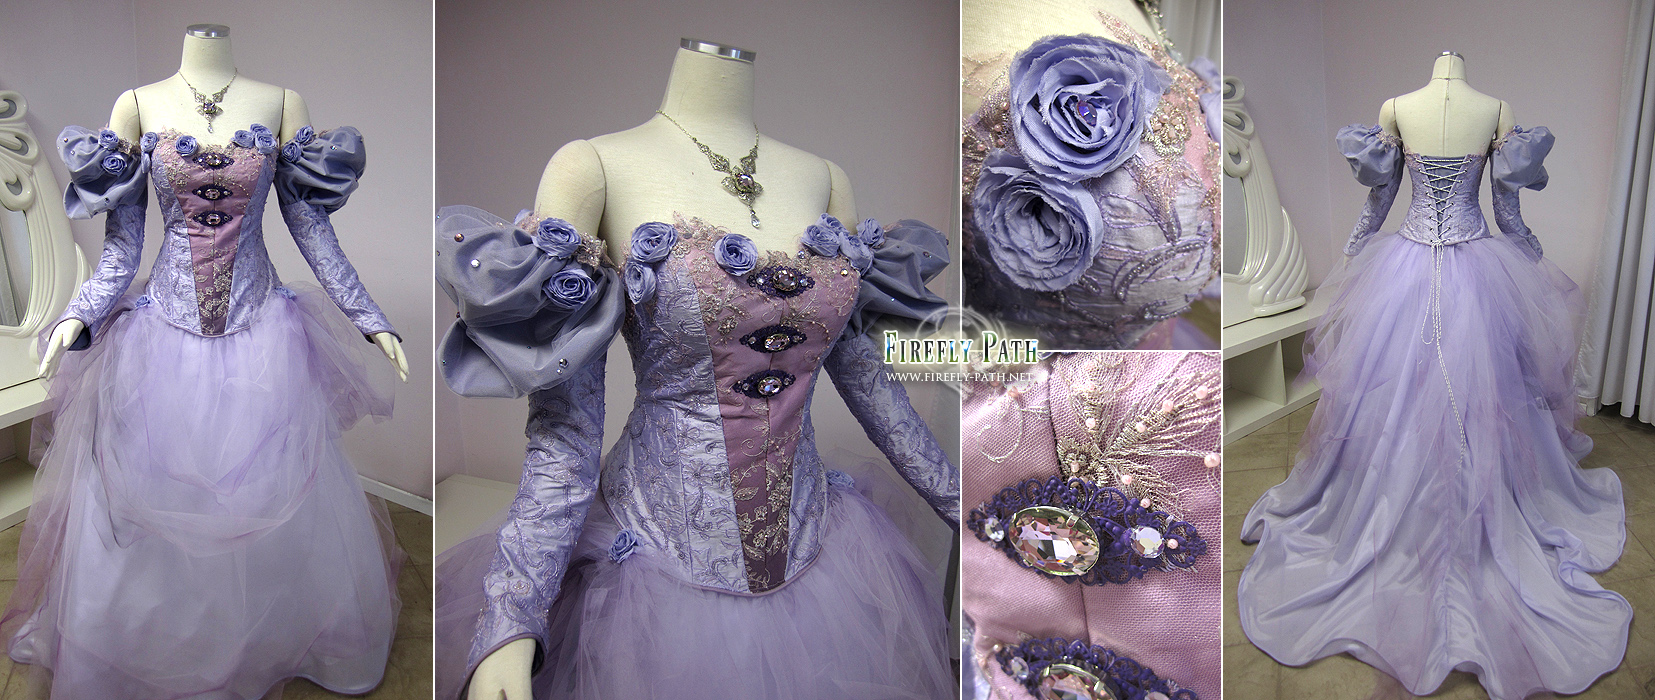 The Lady Amalthea Gown By Firefly Path On Deviantart